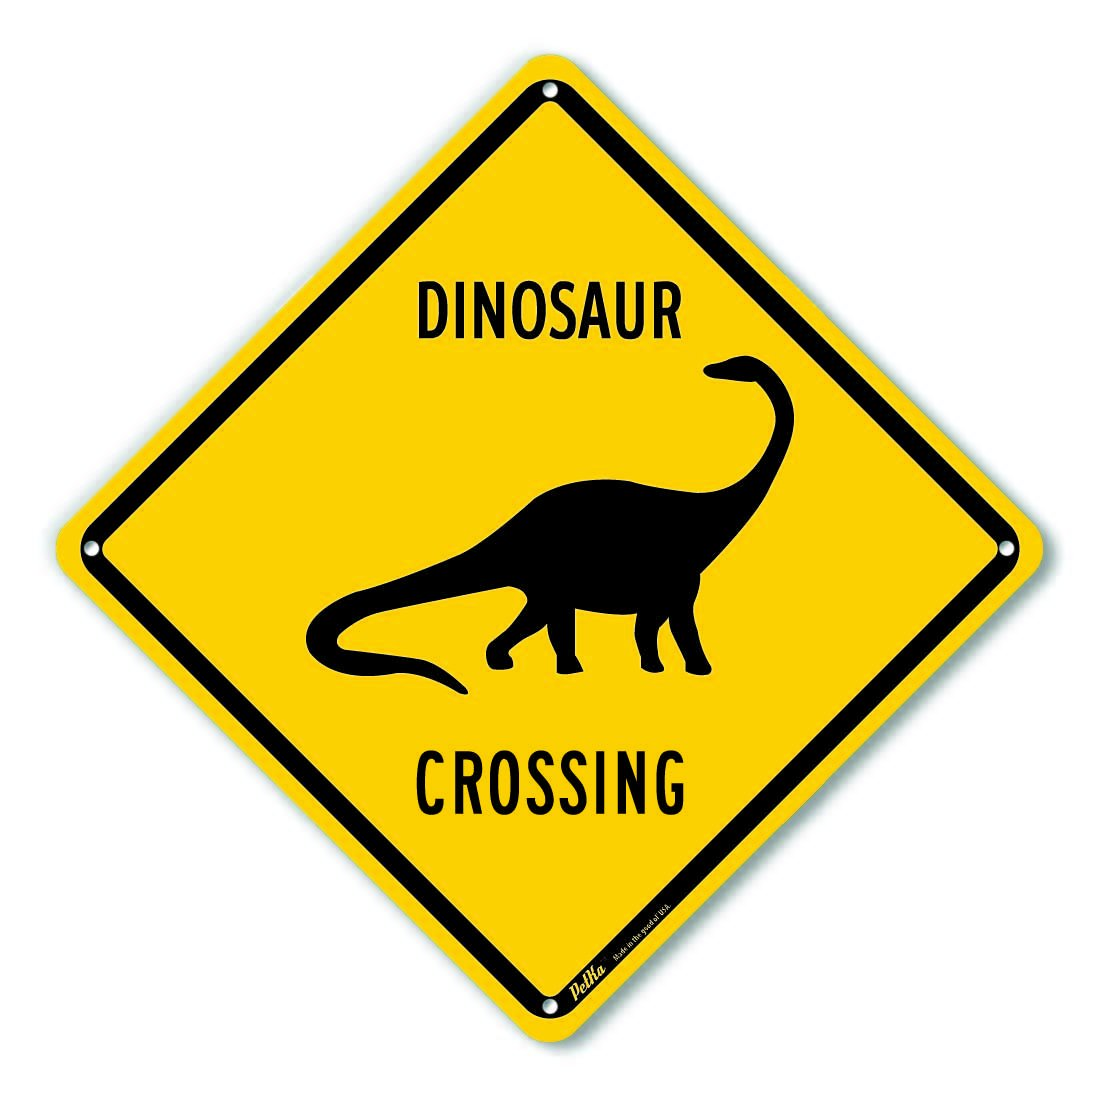 Petka Signs And Graphics Pkac 0159 Na 10x10 Petka Signs And Graphics Pkac 0159 Na Dinosaur Crossing Aluminum Sign Black Text With Yellow Background 10 X 10 Black Text With Yellow Background Amazon Com Industrial Scientific